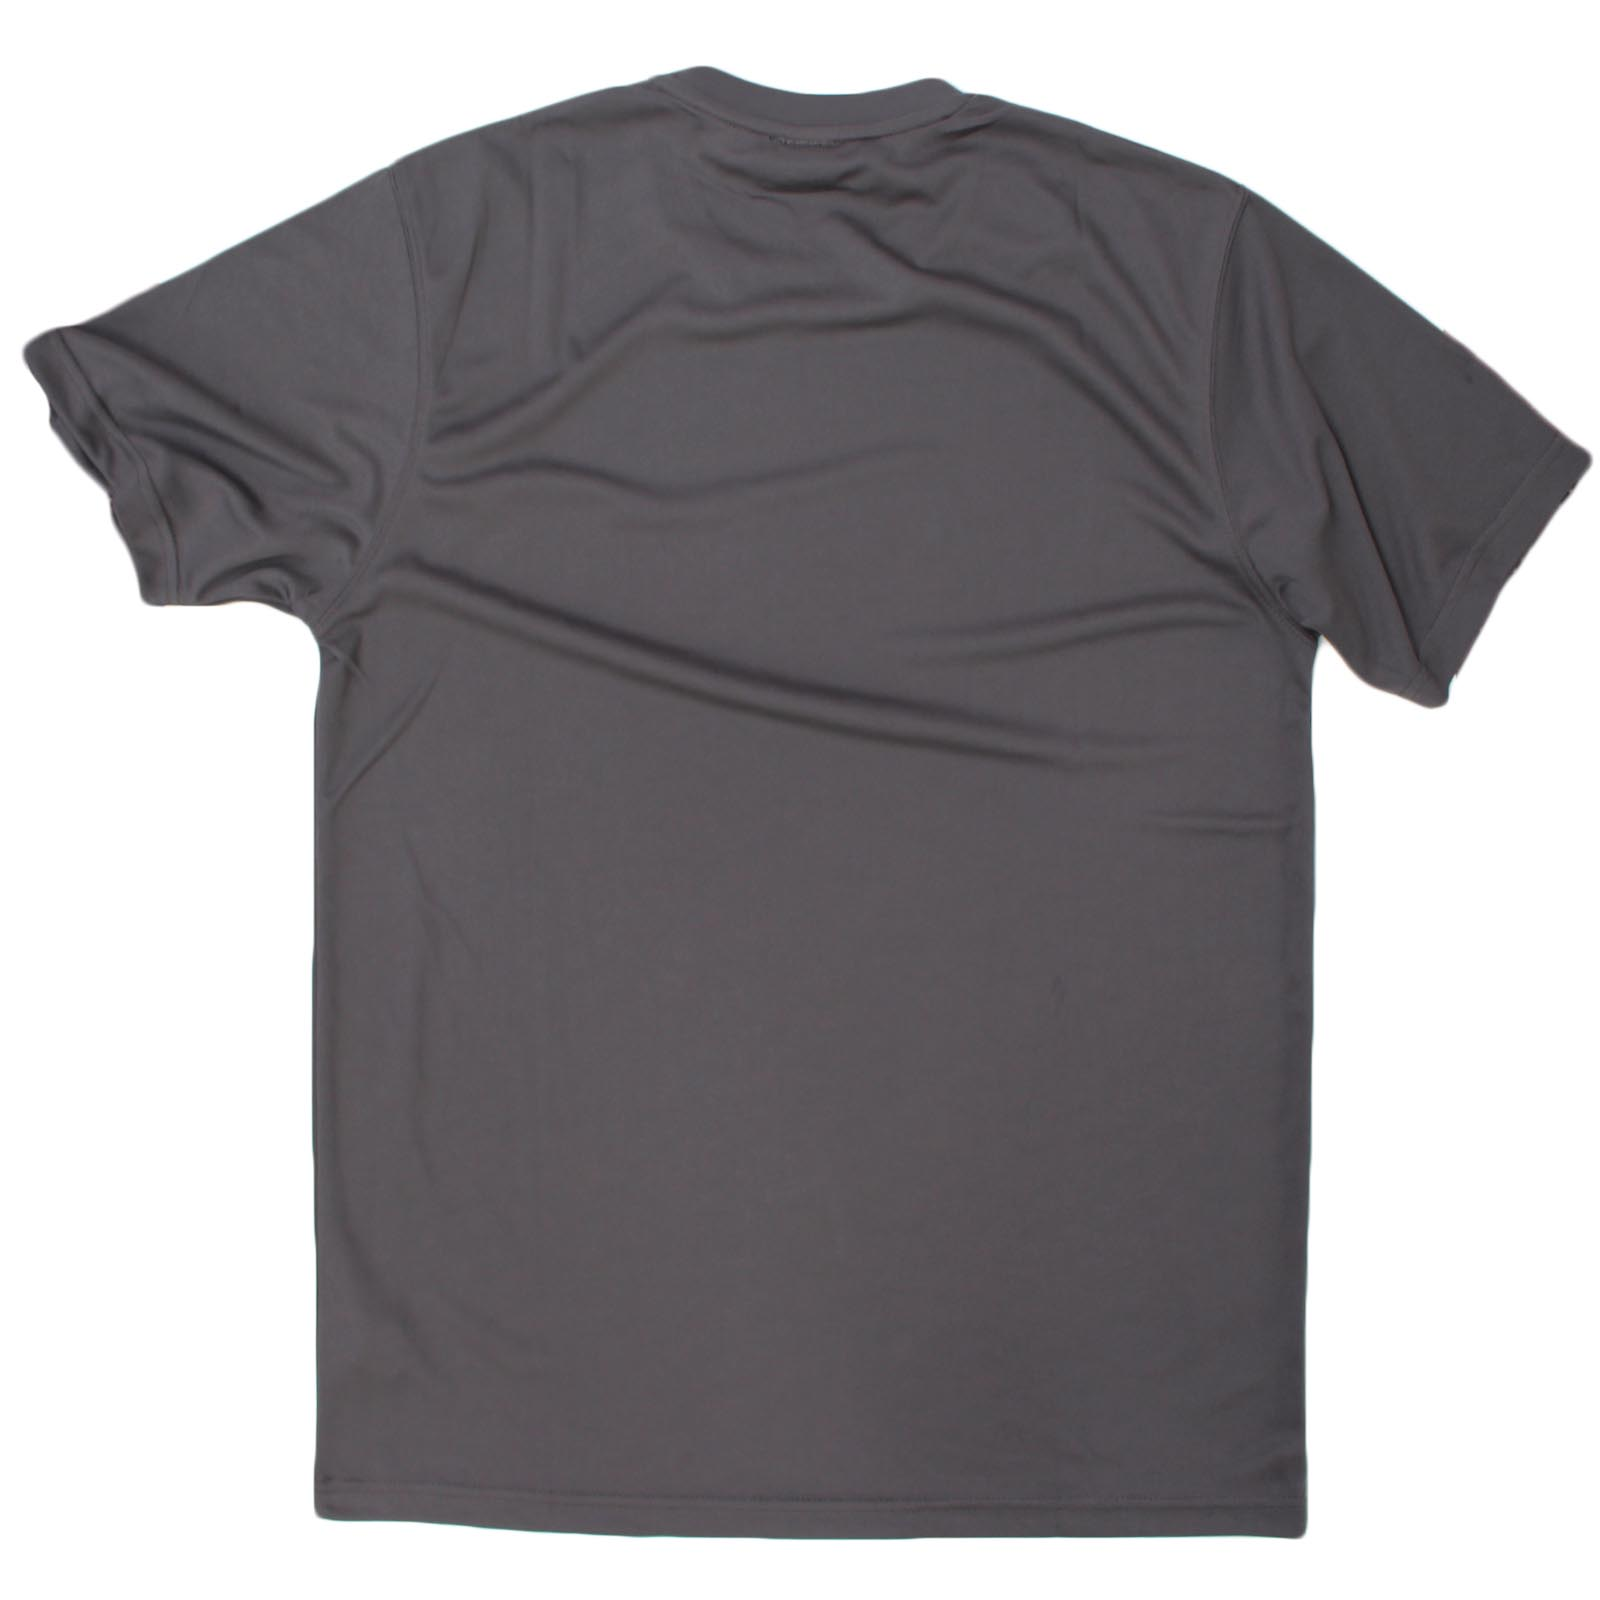 Premium Dry Fit Breathable Sports T-SHIRT Cycling Birthday Gift One Track Mind